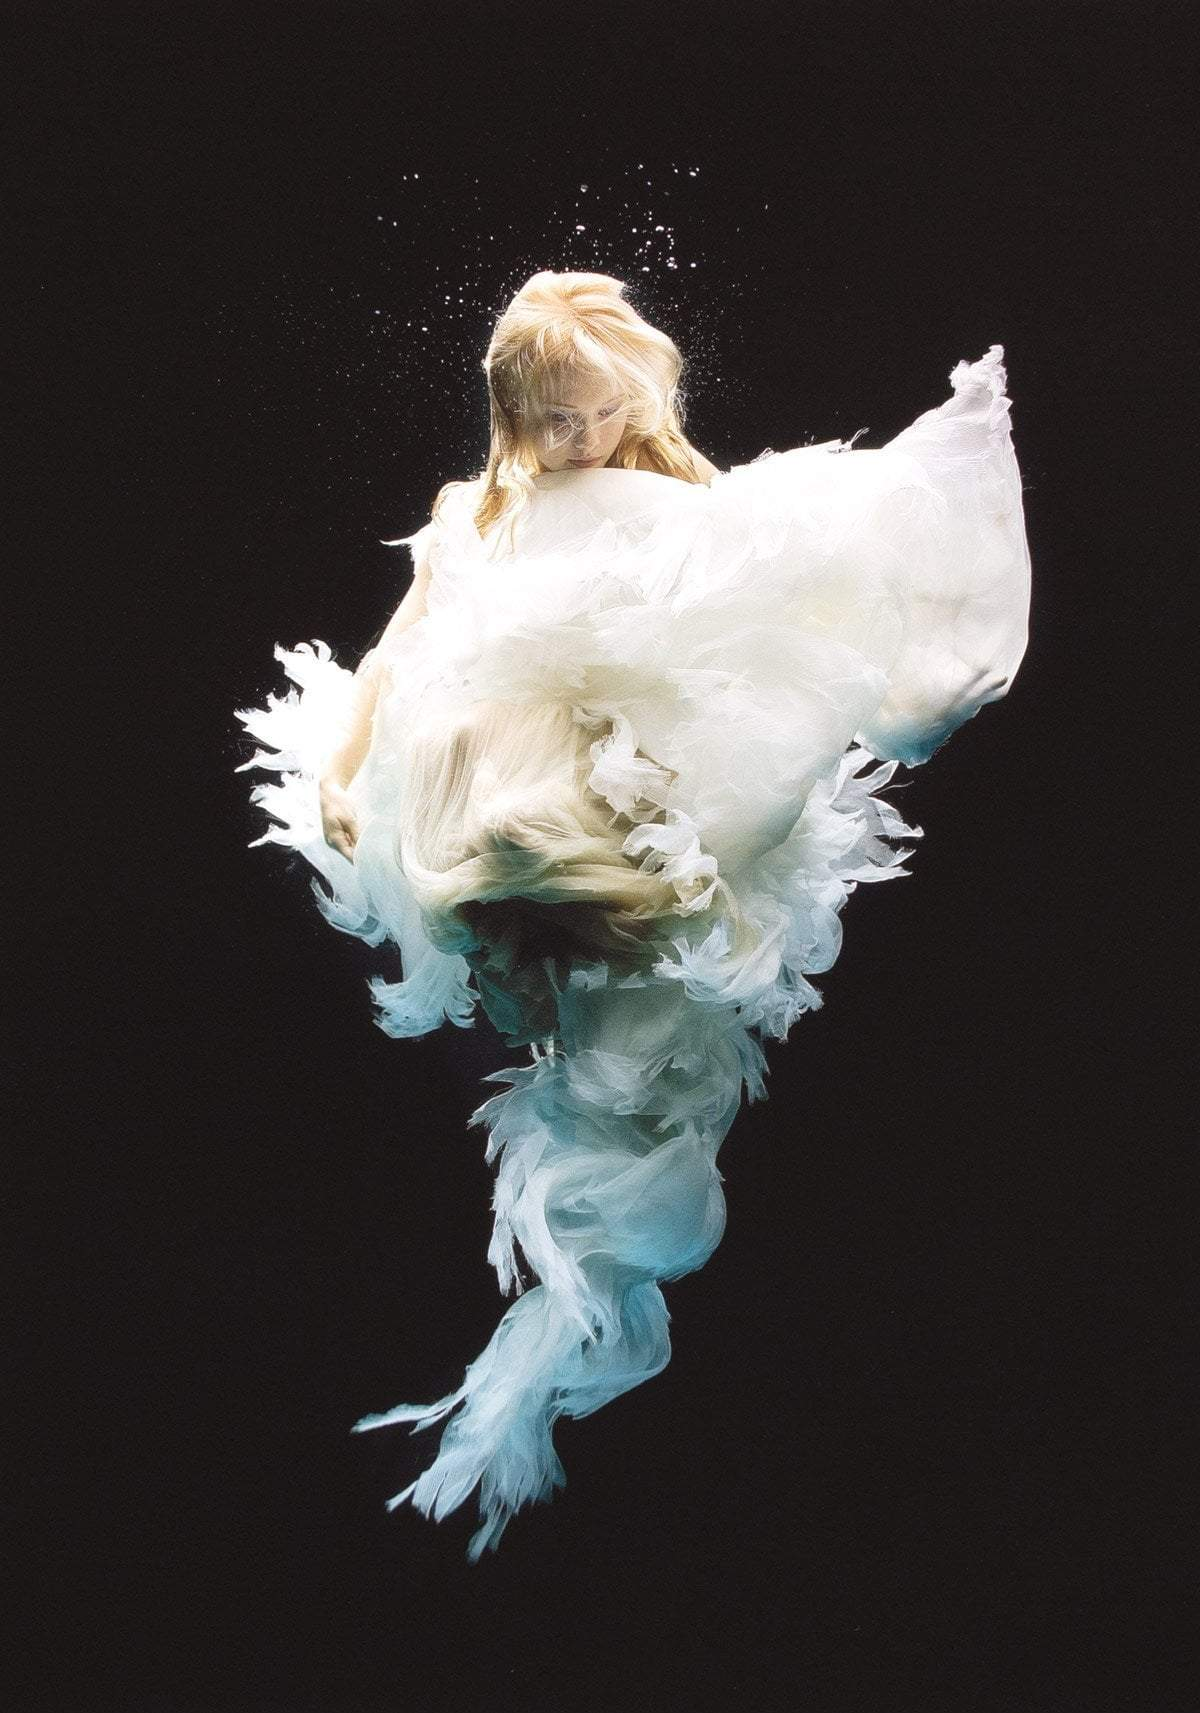 Angel 3 - Edition Zena Holloway